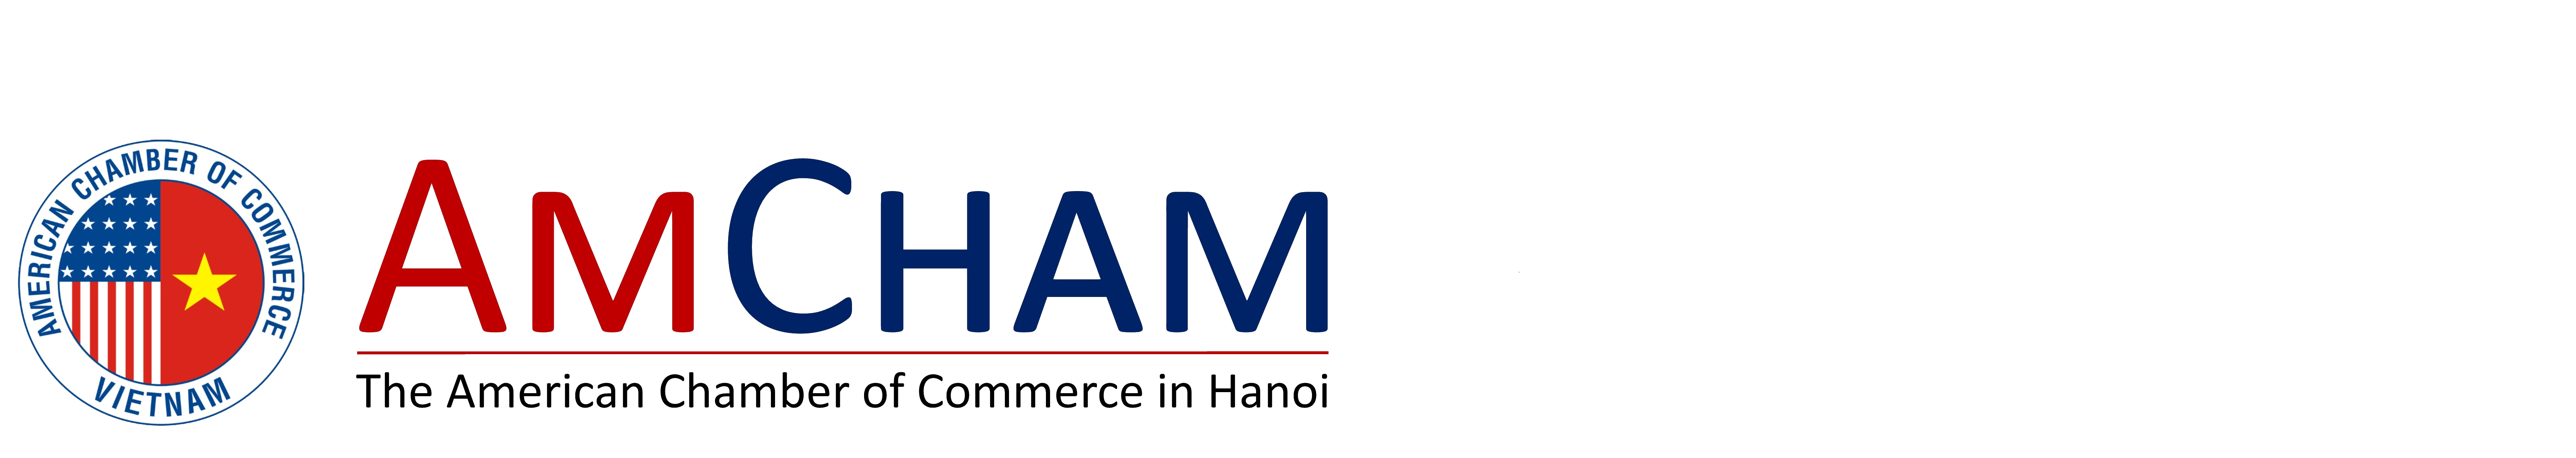 Do's and Dont's for Business Practices in Vietnam – AmCham Hanoi